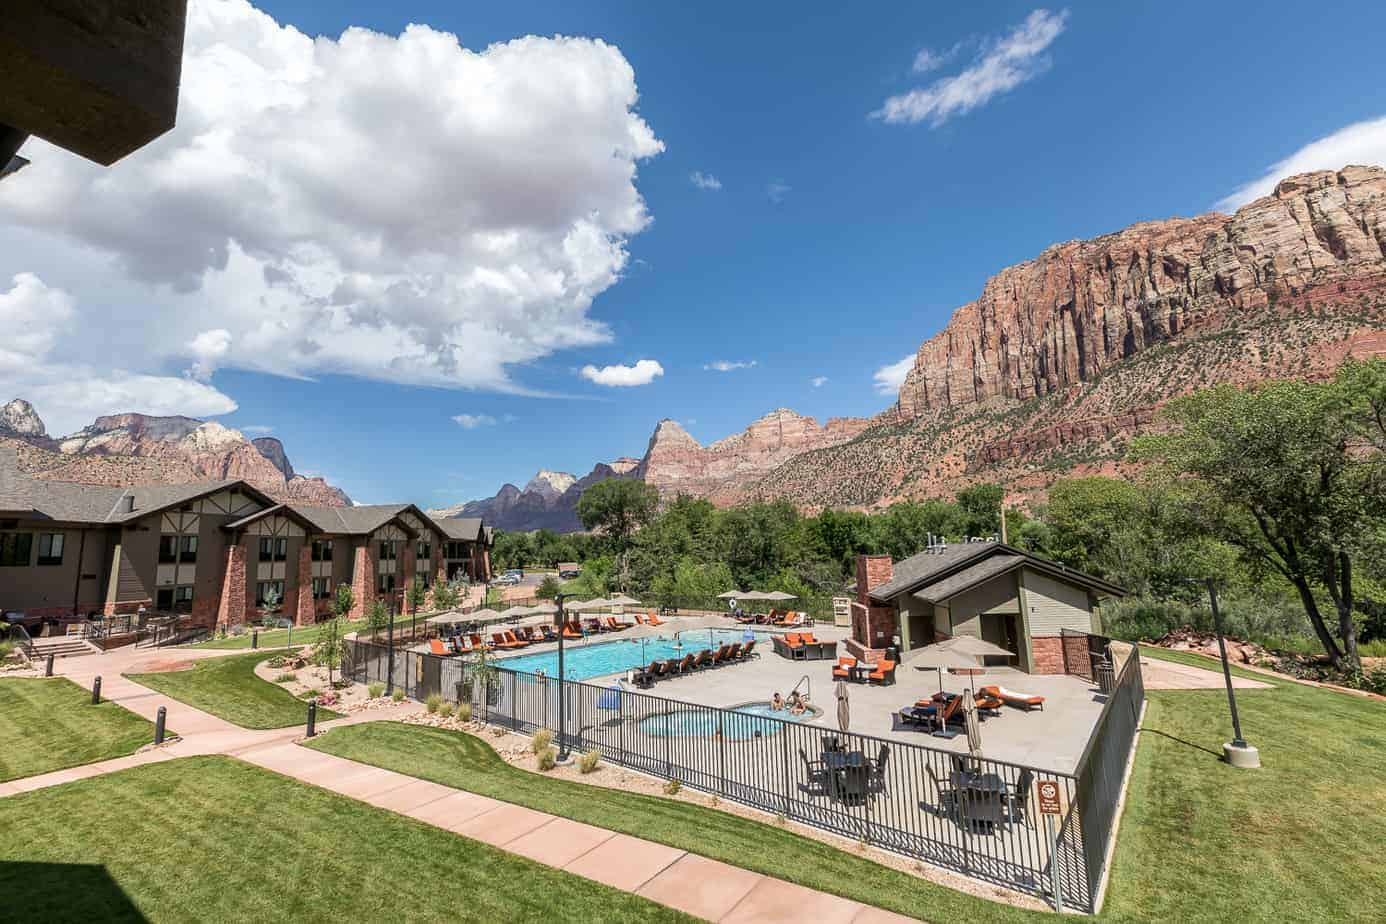 Best Place to Stay for Zion National Park: SpringHill Suites